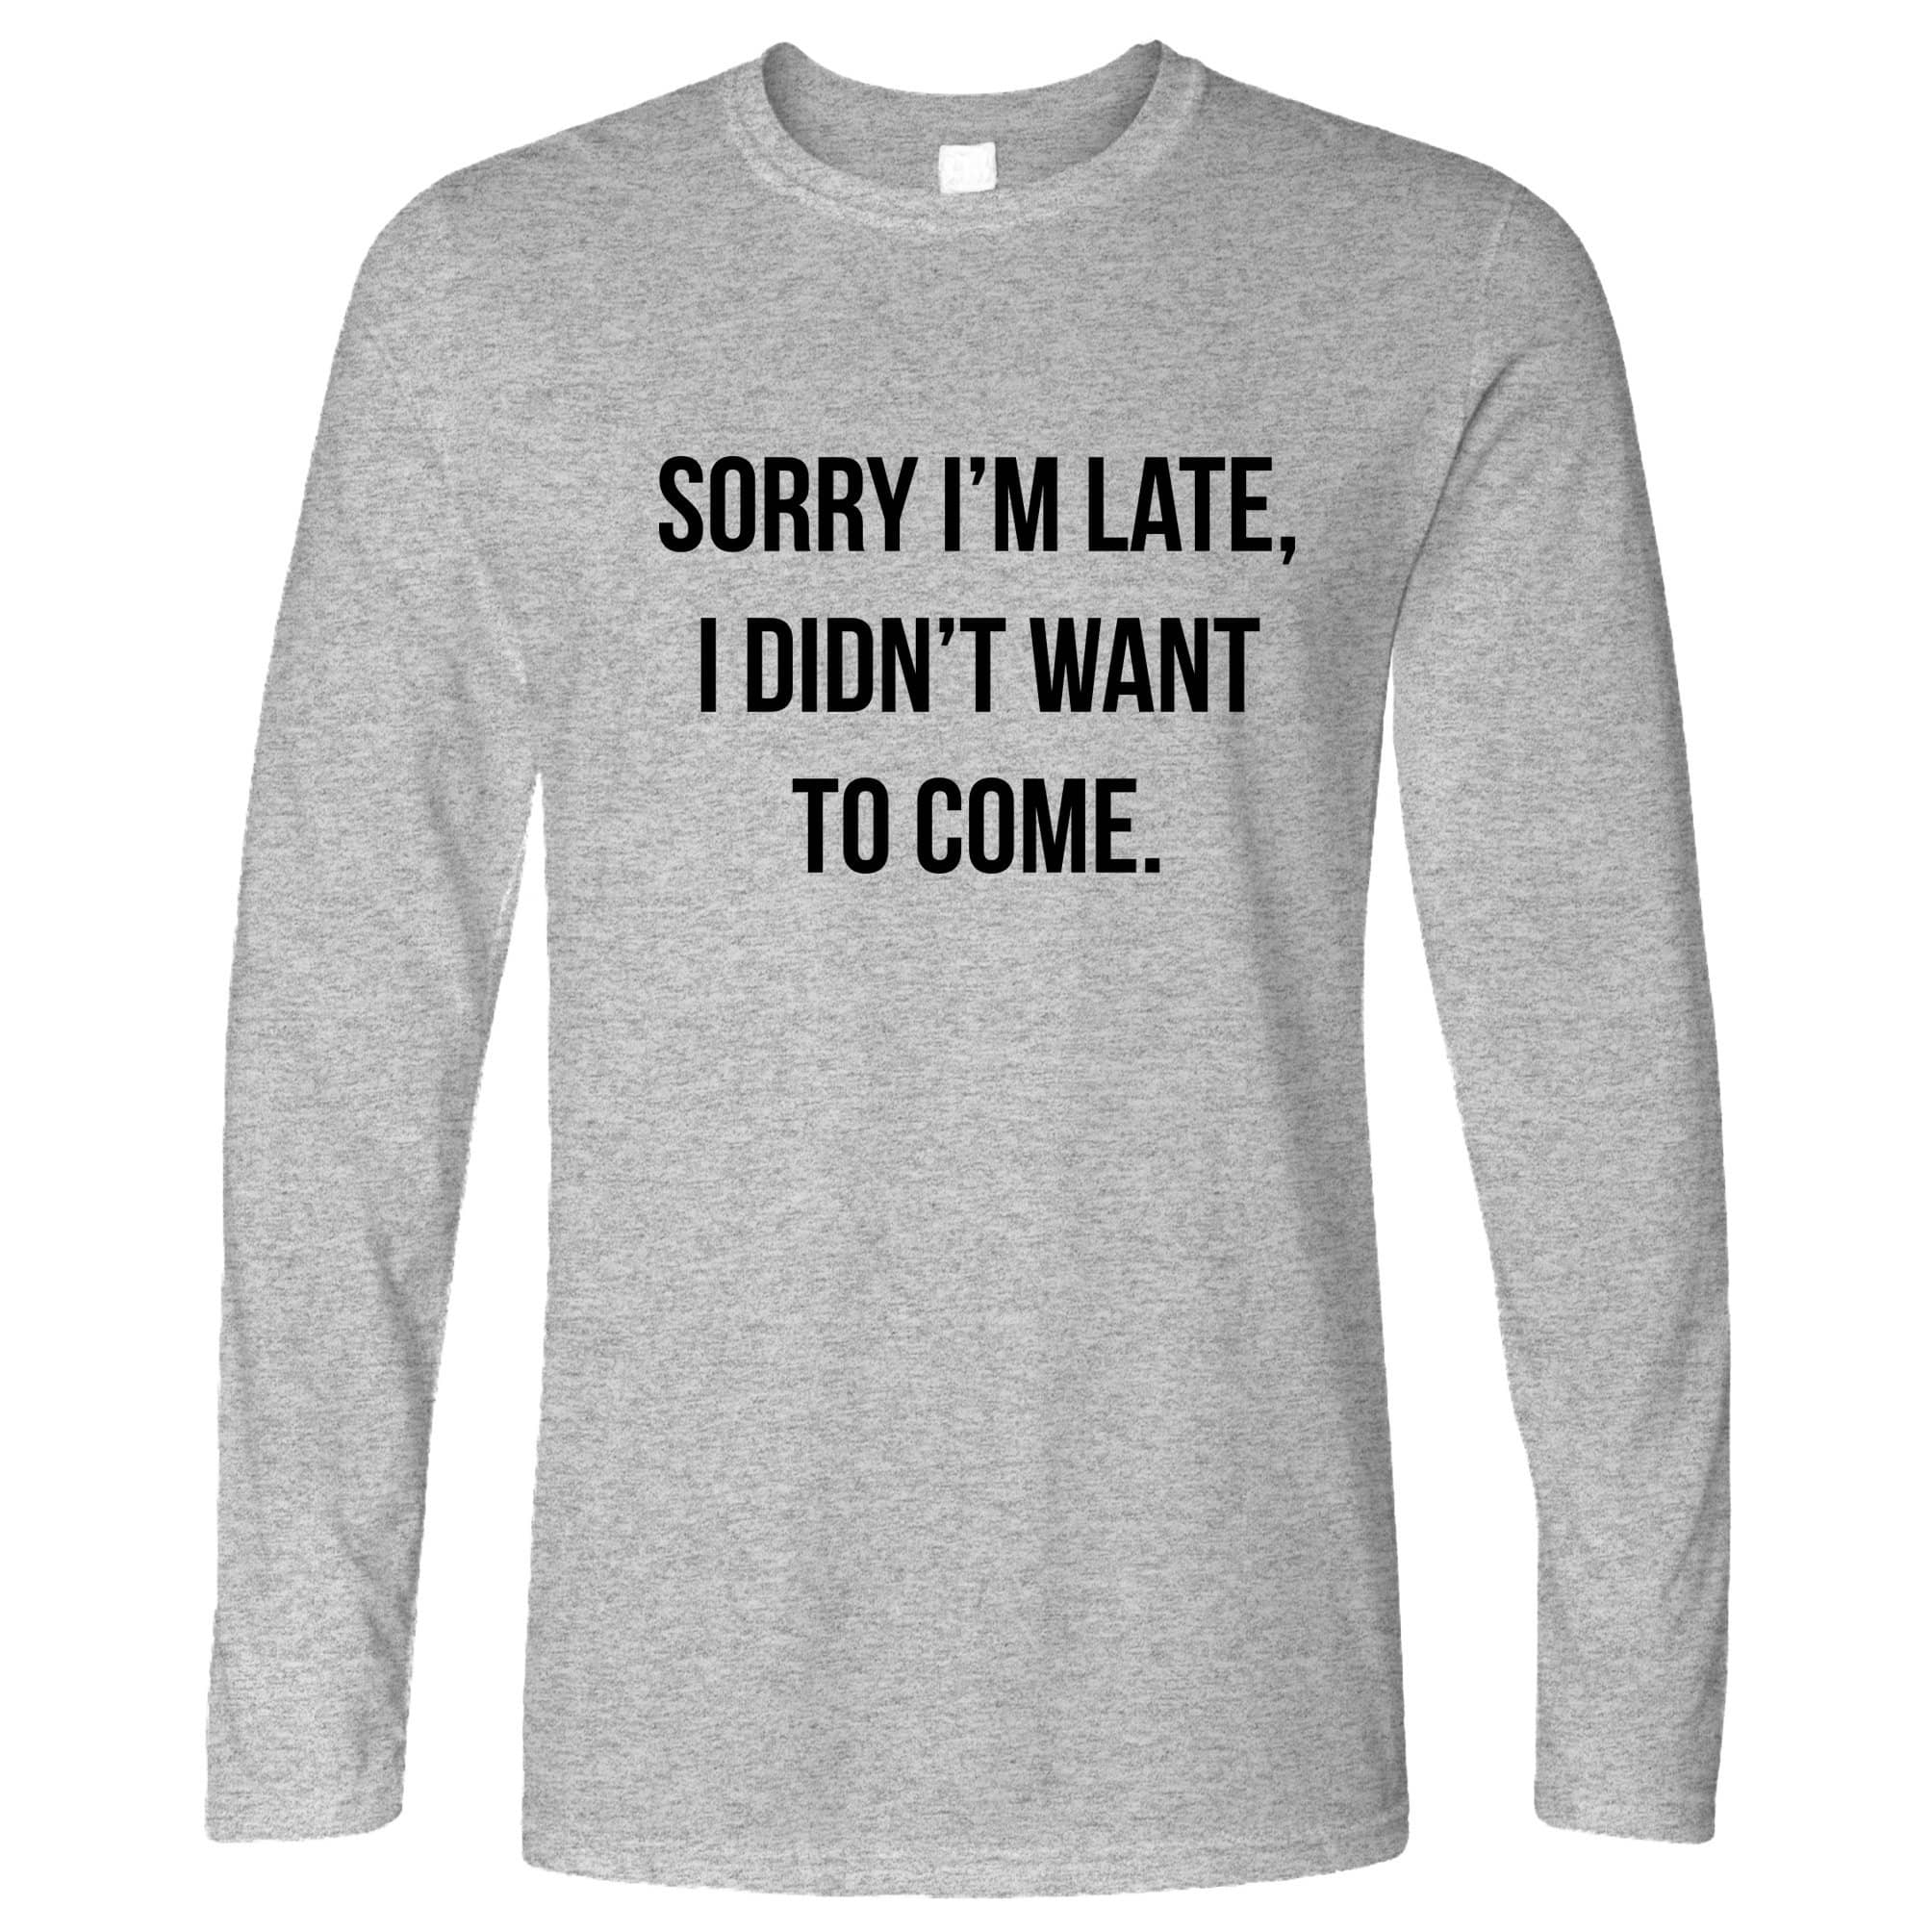 Novelty Long Sleeve Sorry I'm Late, I Didn't Want To Come T-Shirt